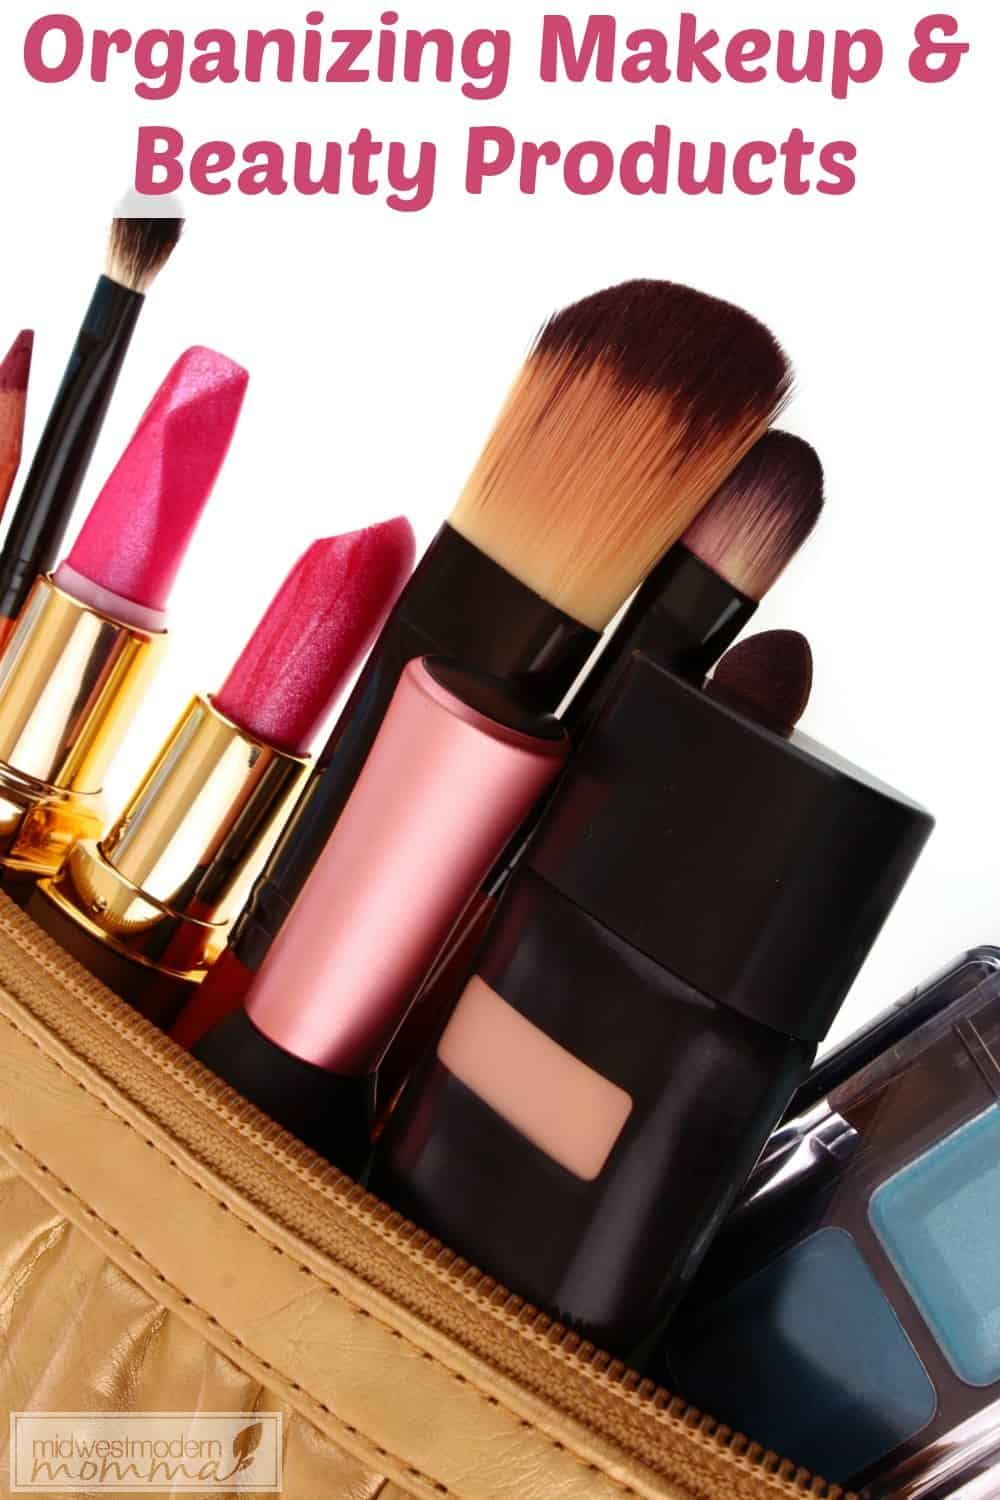 Tips for Organizing Your Makeup & Beauty Products